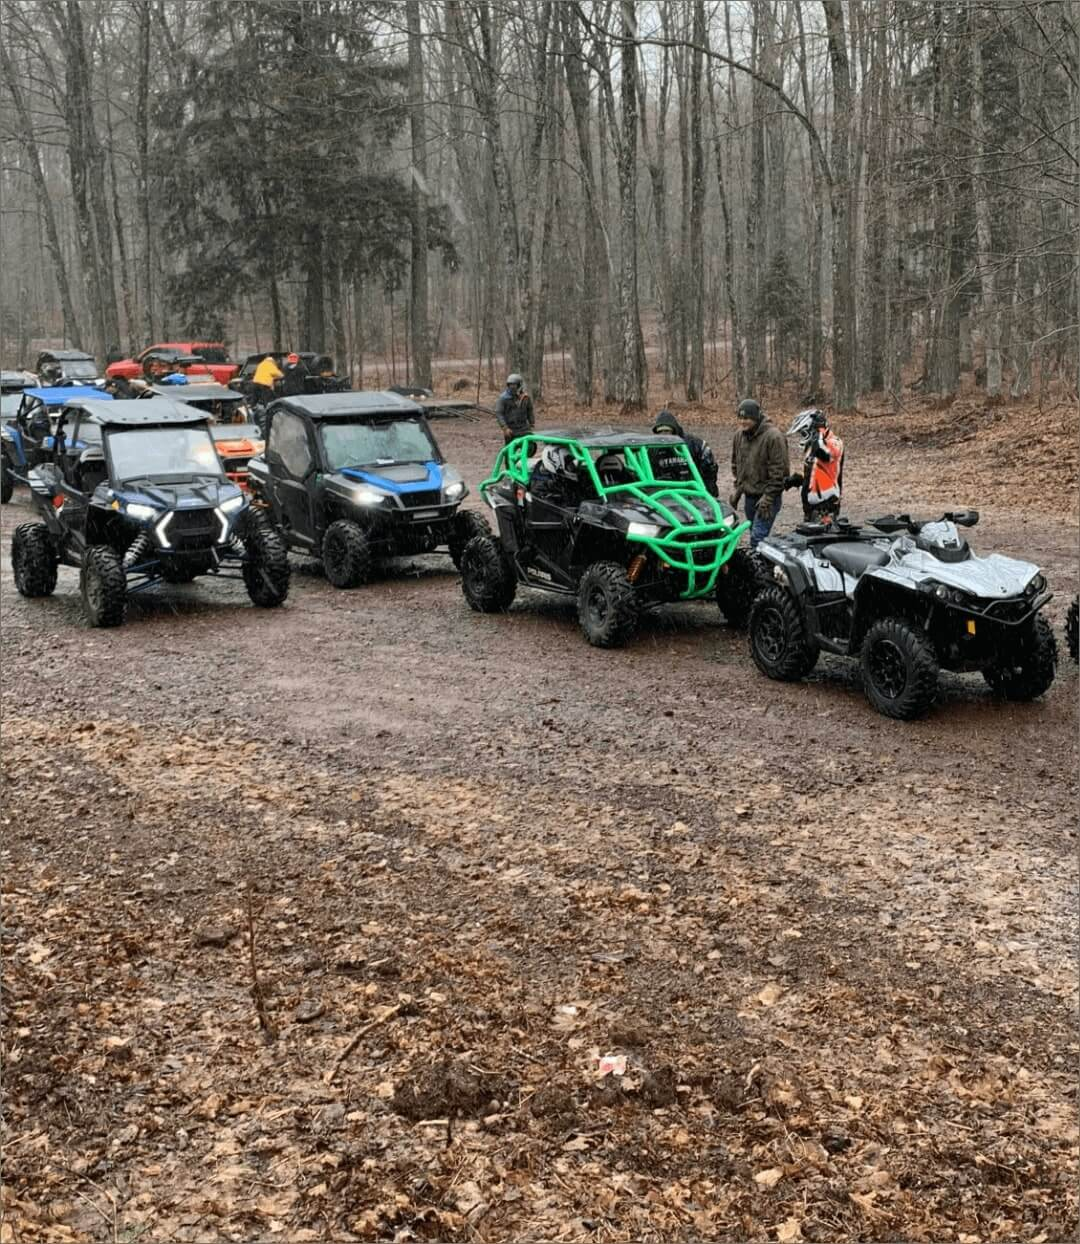 Many ATVs and UTVs with their drivers in the woods while raining